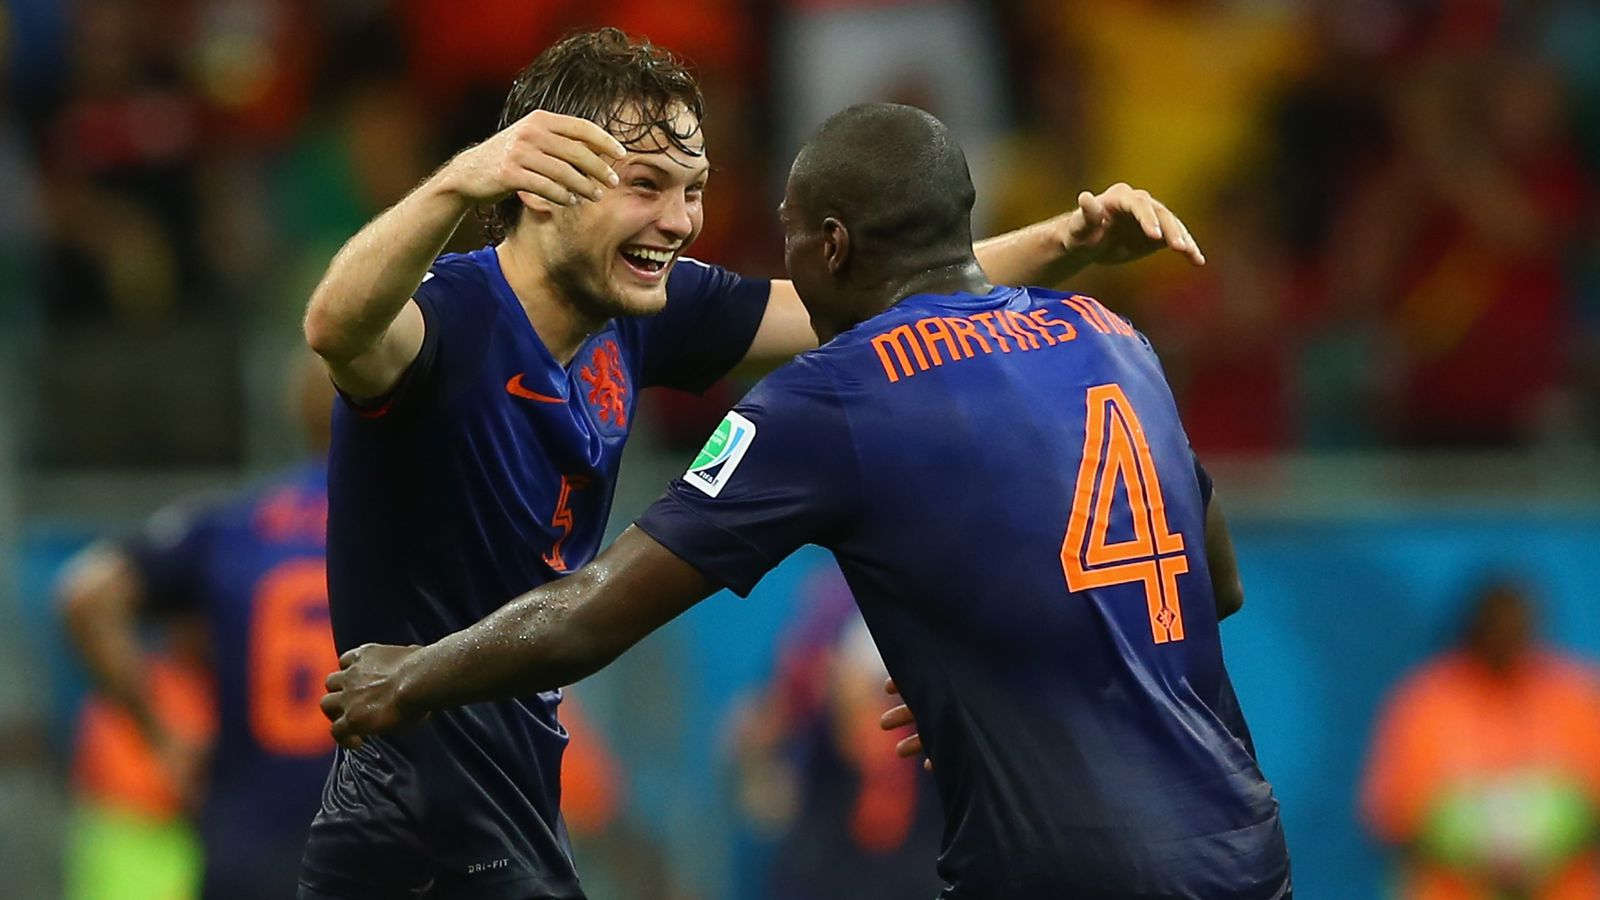 australia vs netherlands Australia vs netherlands in porto alegre match preview australia and netherlands have never met at the world cup finals, although they have played three international friendly matches in 2006.